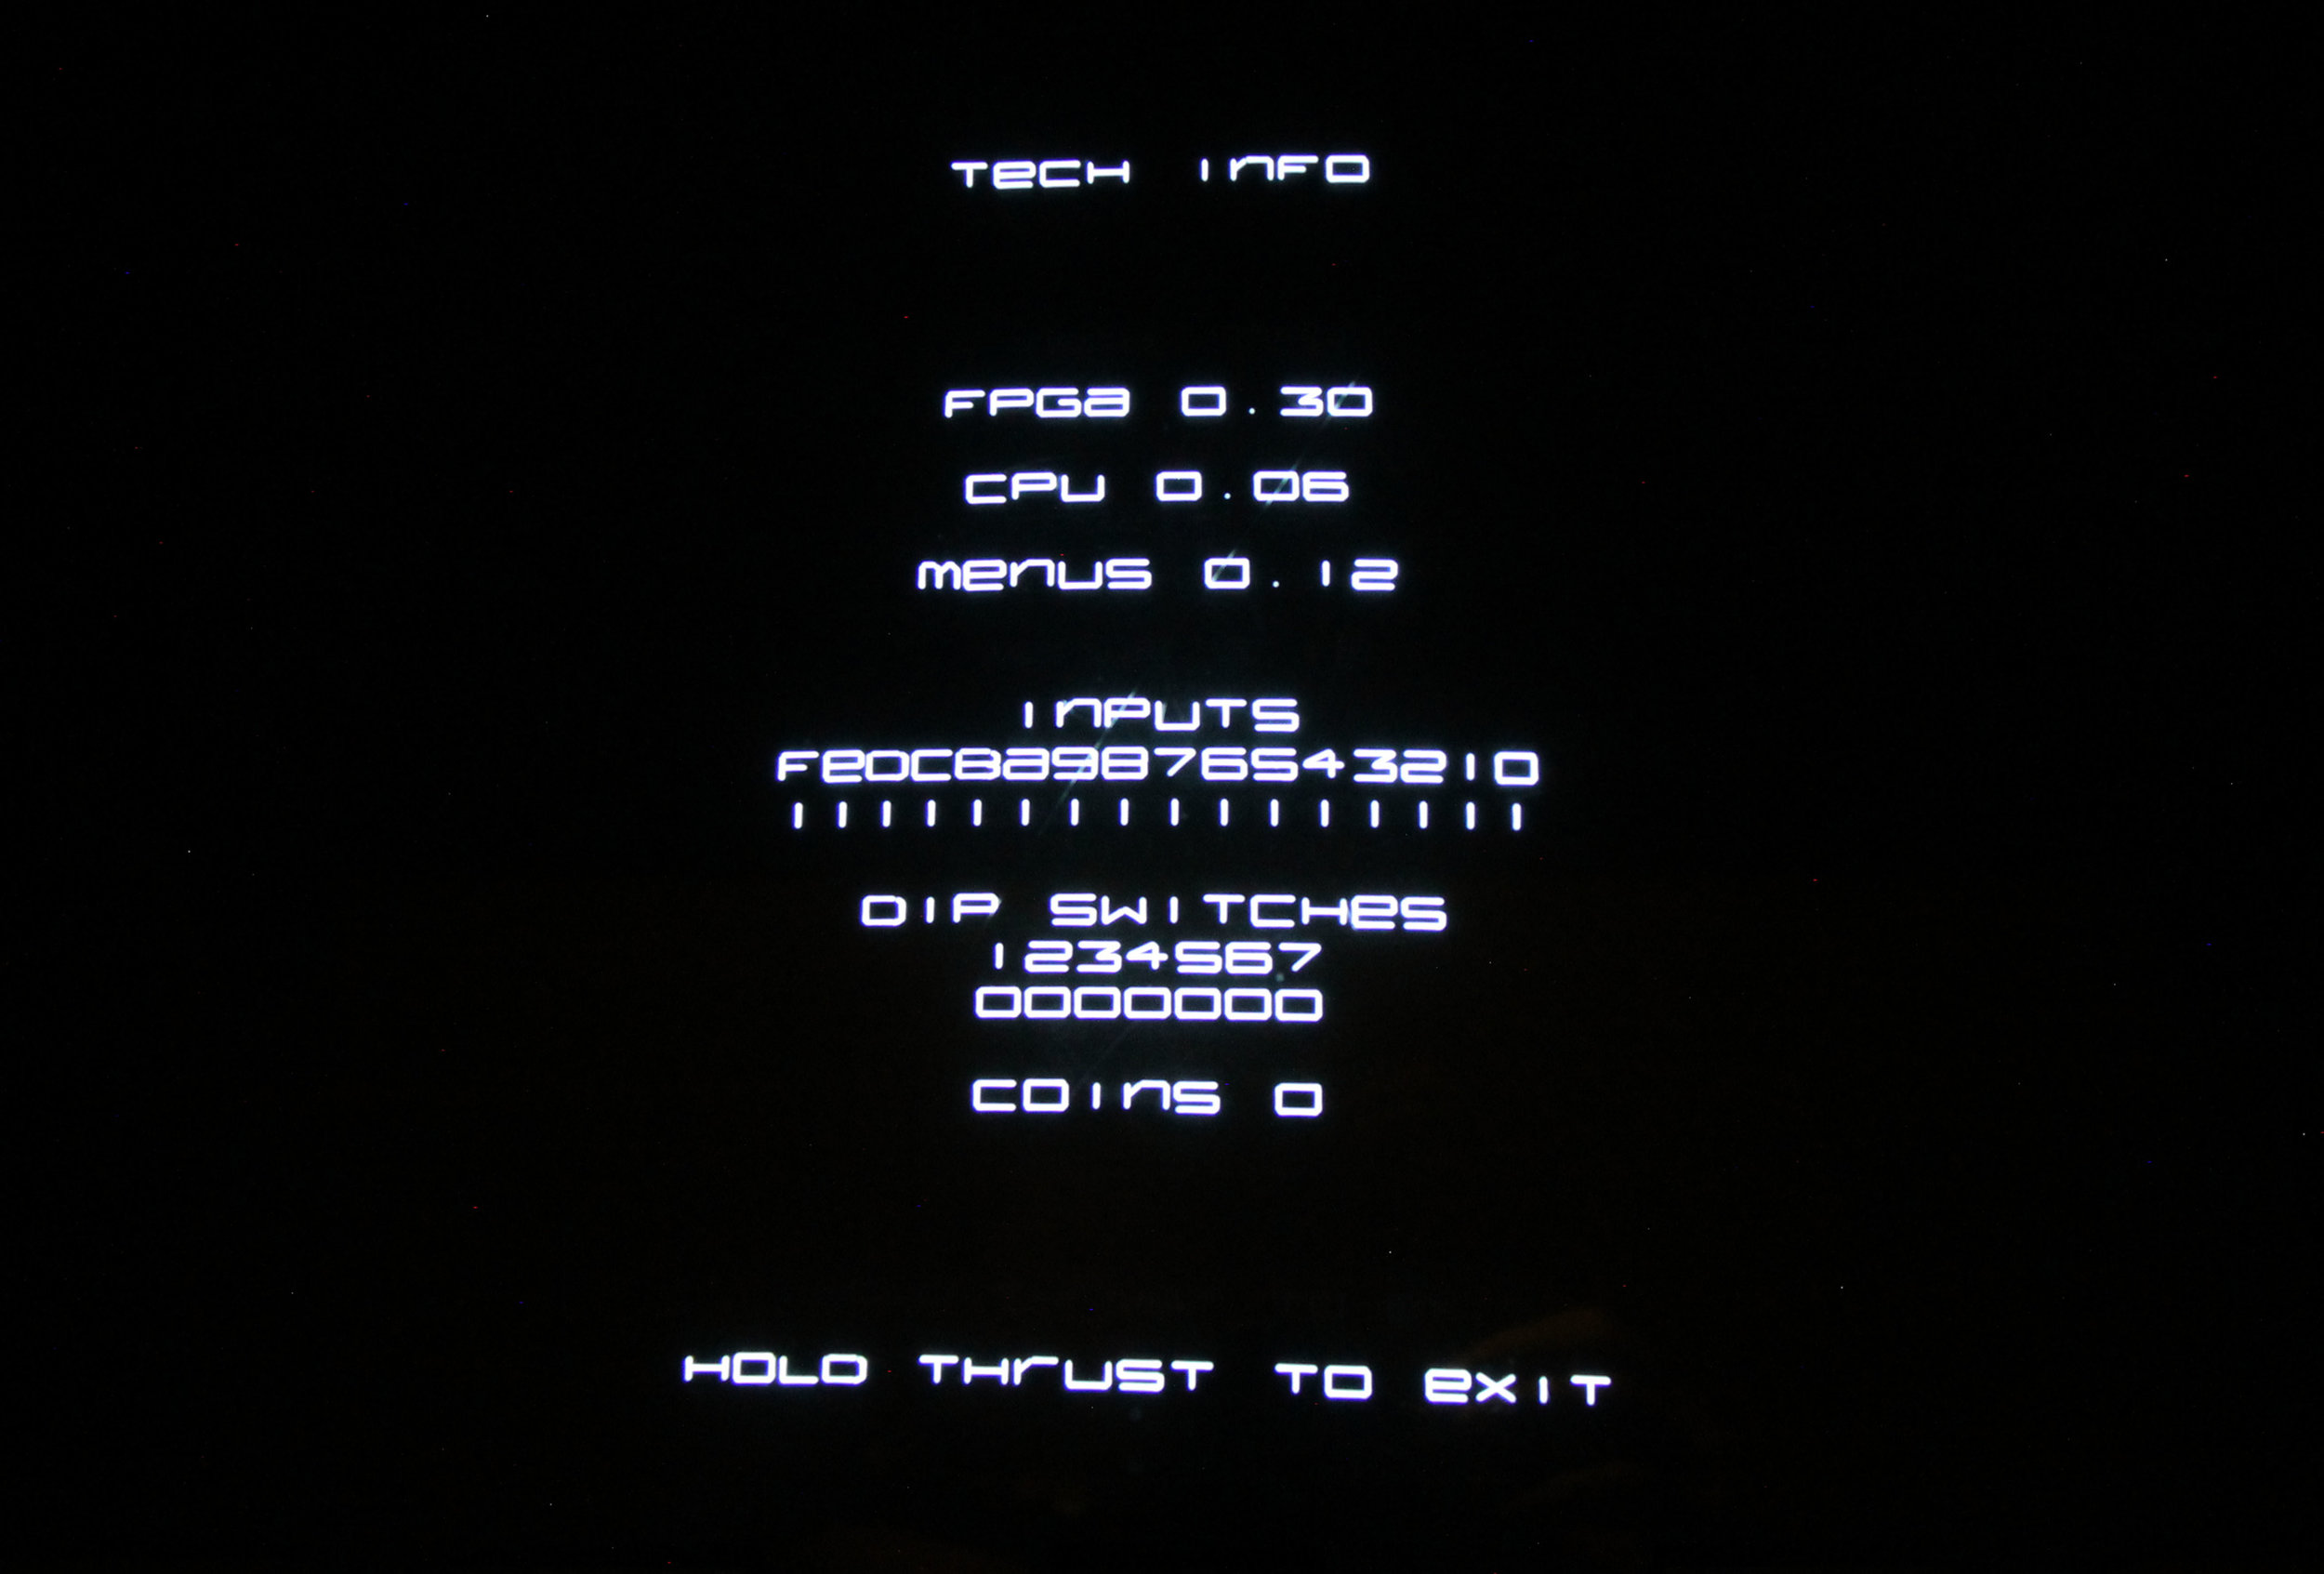 Picture of the Tech Info screen, showing versioning as well as input status for testing controls